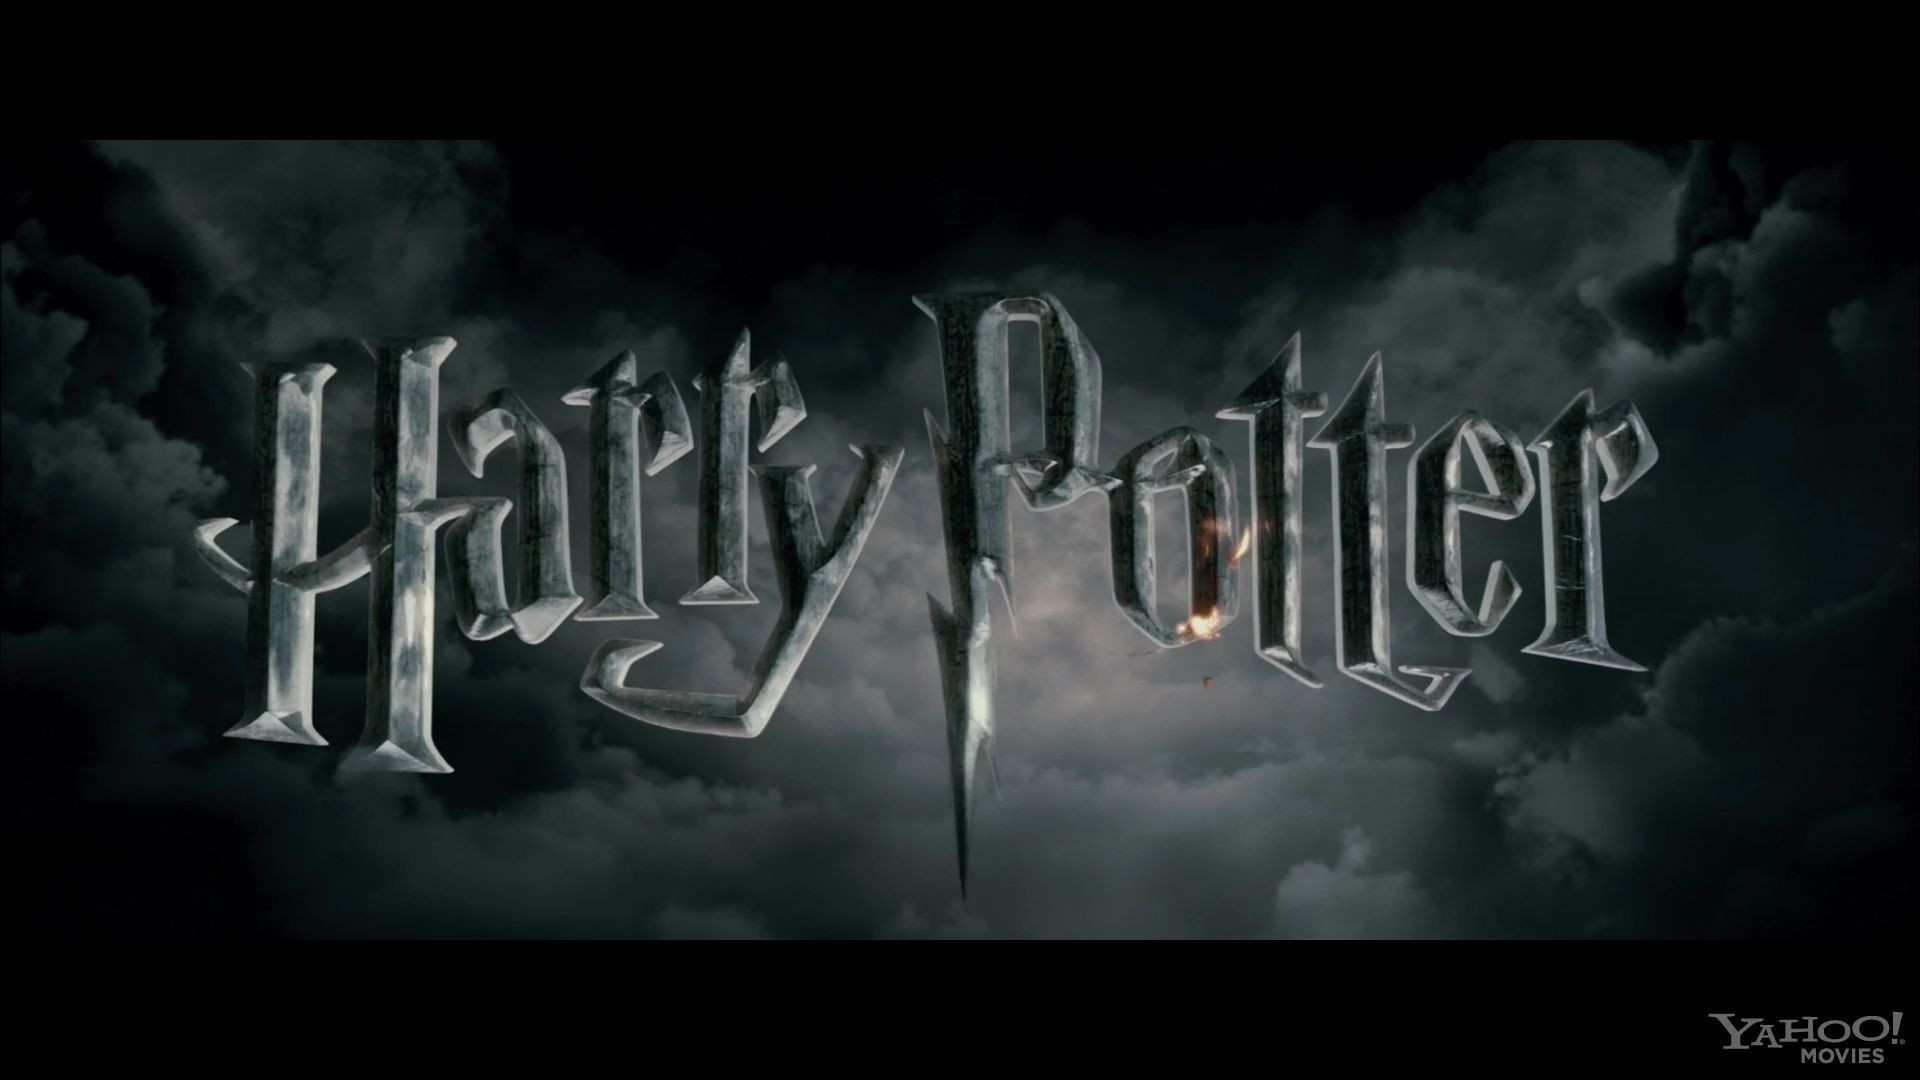 Wallpapers Harry Potter 53 Harry Potter Backgrounds ① Download Free Beautiful Full Hd